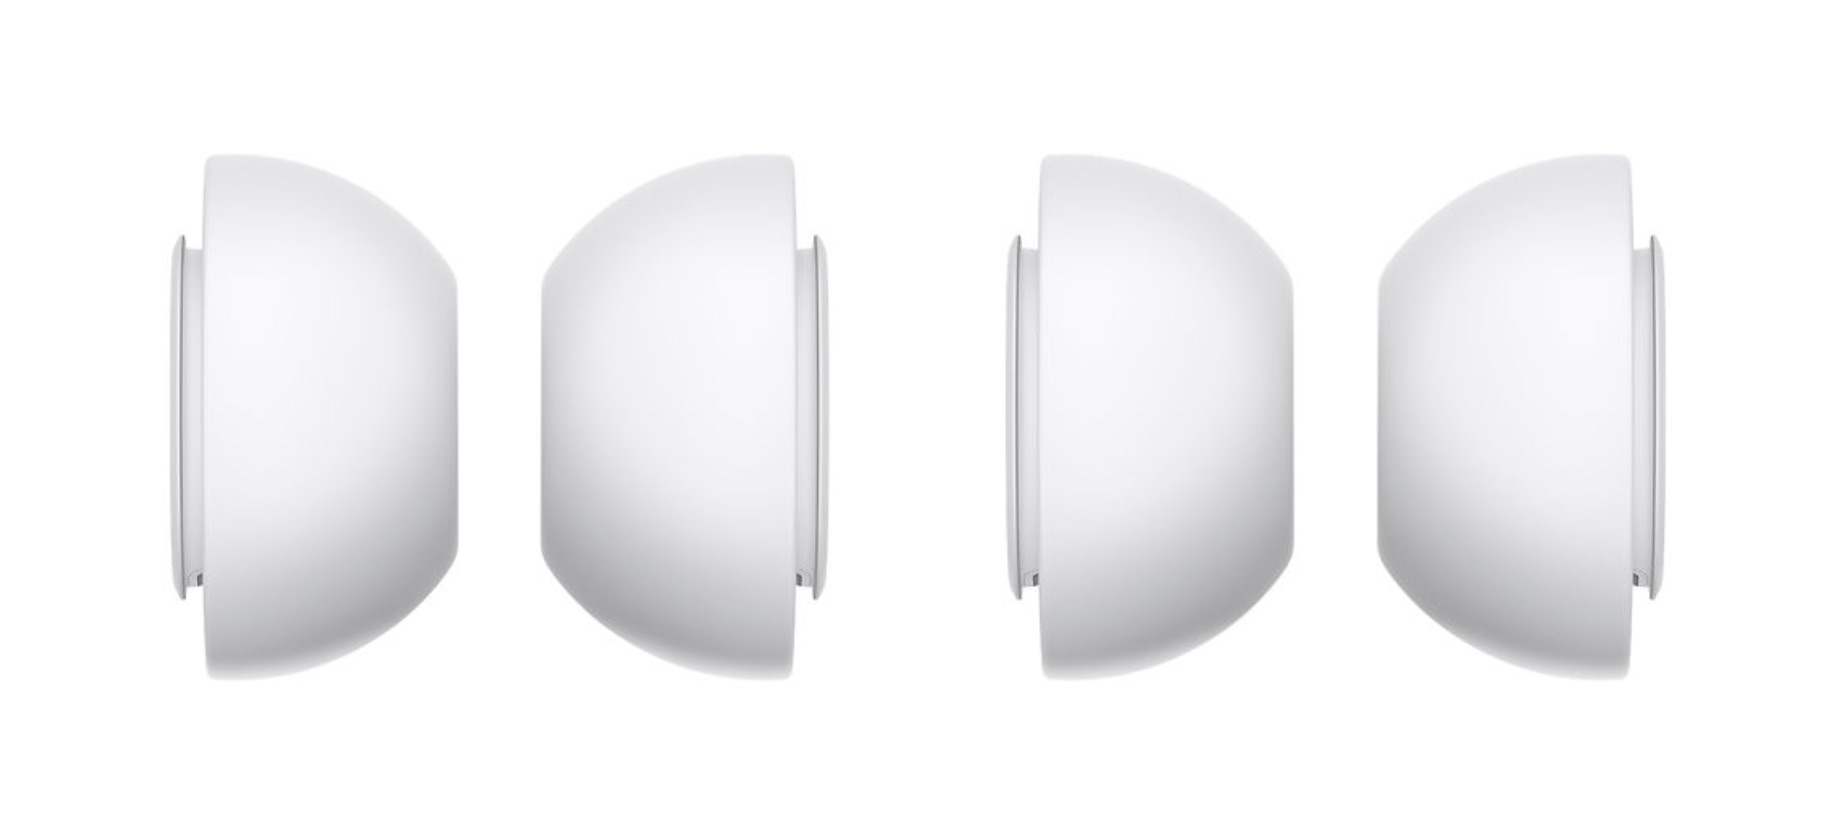 Apple Begins Selling Airpods Pro Replacement Ear Tips Through Its